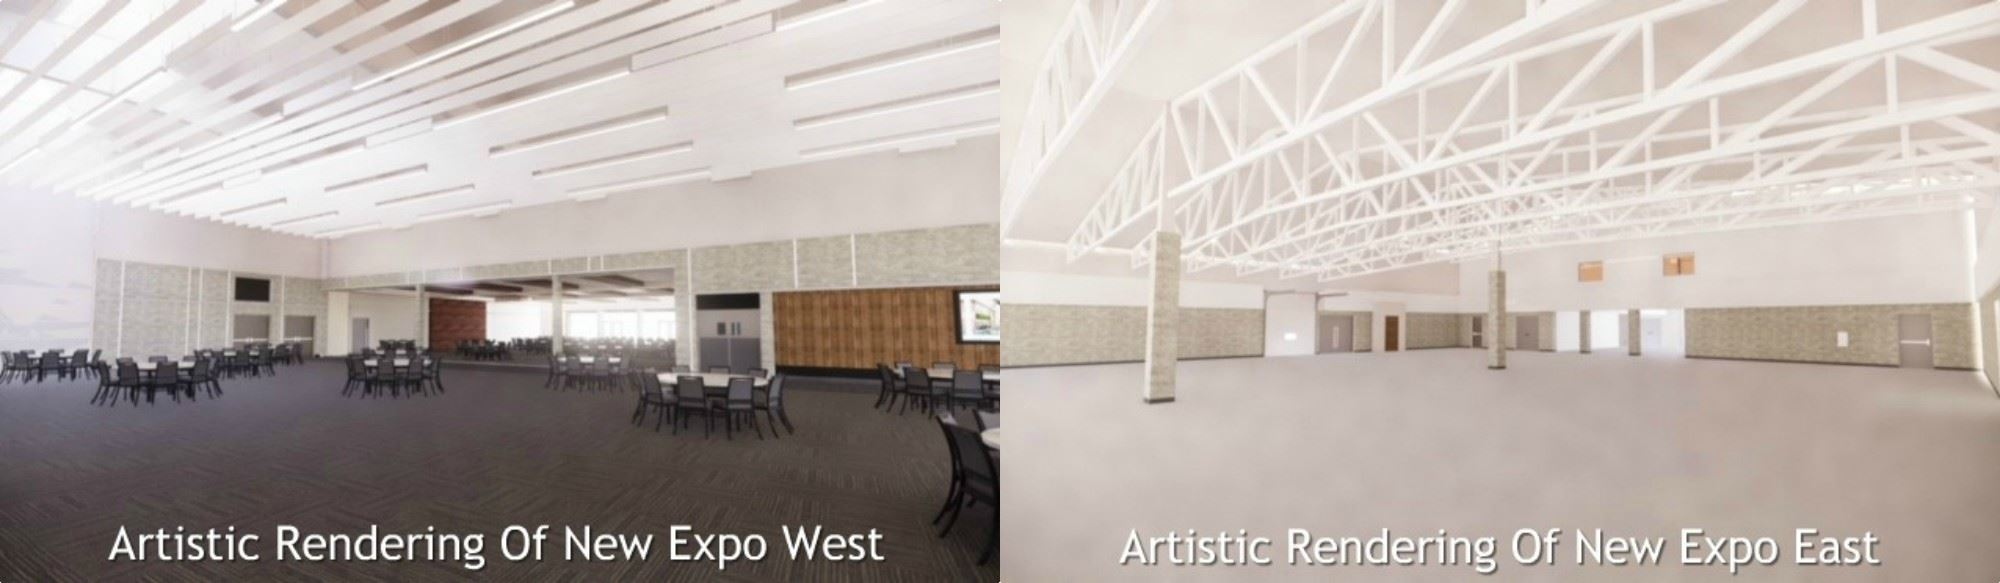 Artistic Rendering Of Renovated Expo West and Expo East